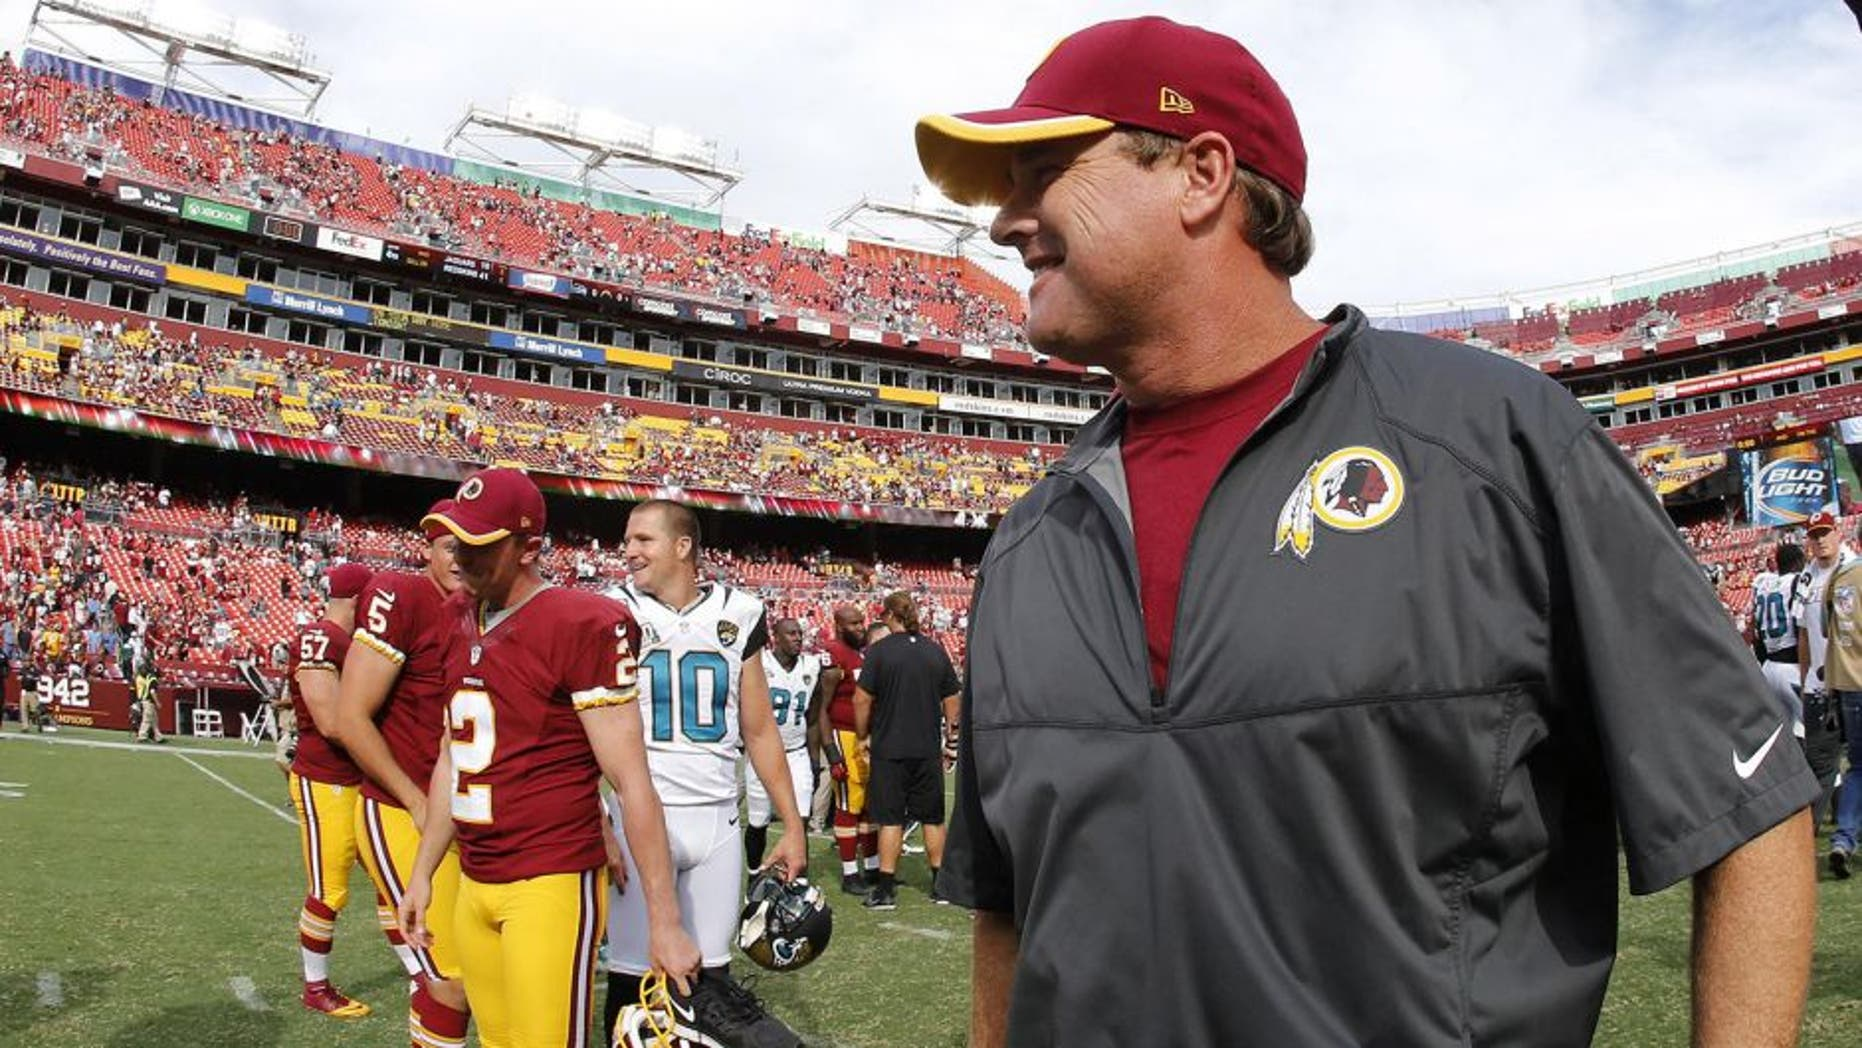 Sep 14, 2014; Landover, MD, USA; Washington Redskins head coach Jay Gruden (R) walks off the filed after the Redskins' game against the Jacksonville Jaguars at FedEx Field. The Redskins won 41-10. Mandatory Credit: Geoff Burke-USA TODAY Sports